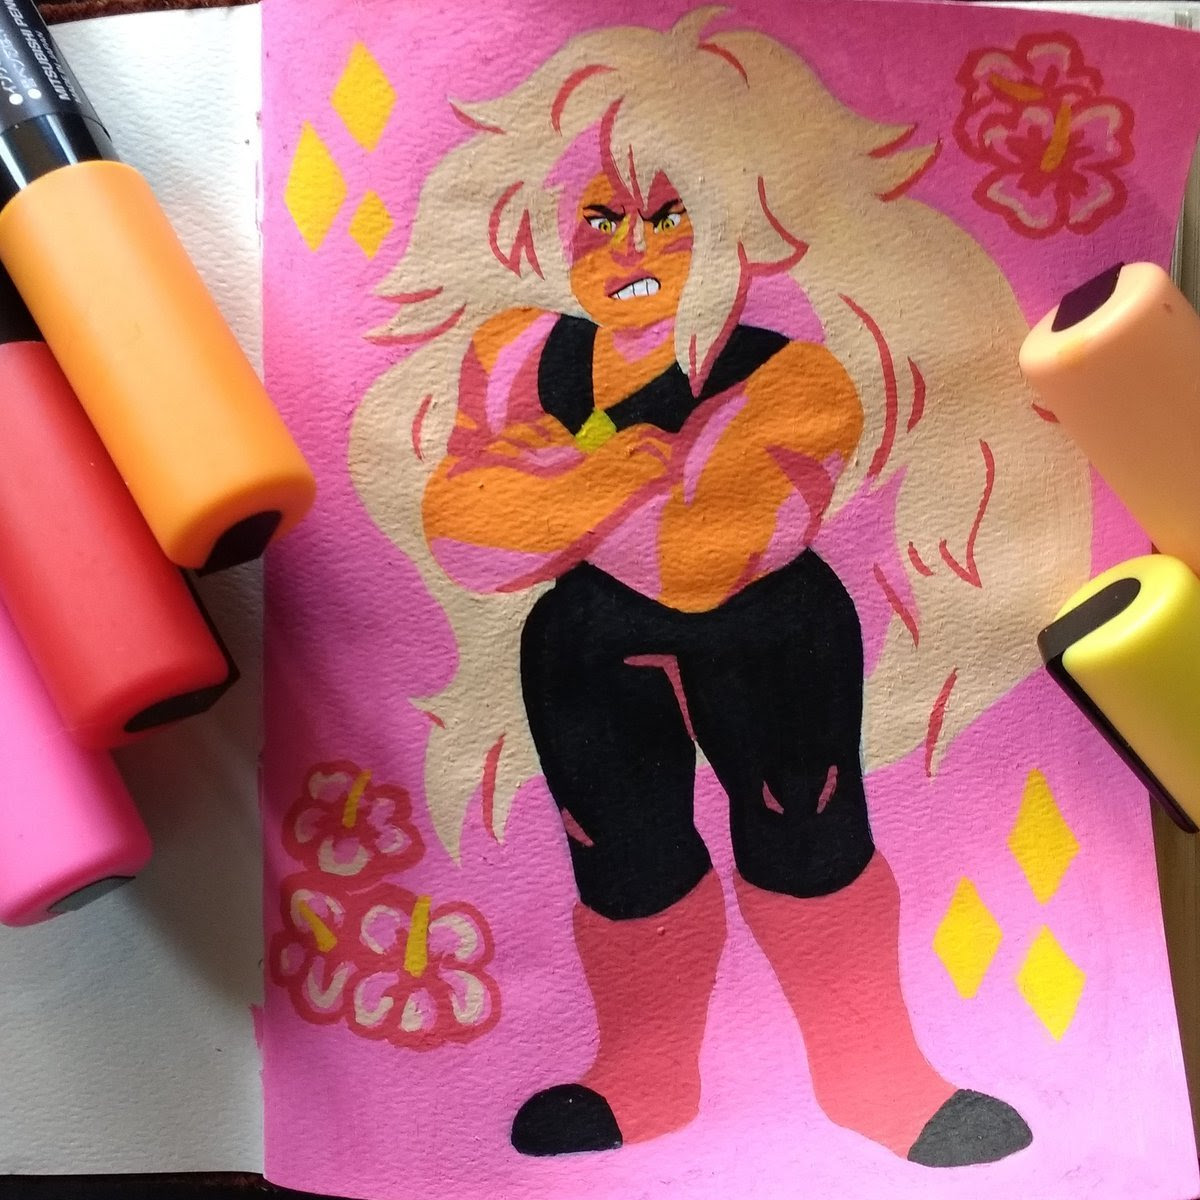 Continuing with my Posca drawings, I did some Steven Universe drawings! The characters from this show work really well with the bright and bold Posca colors.